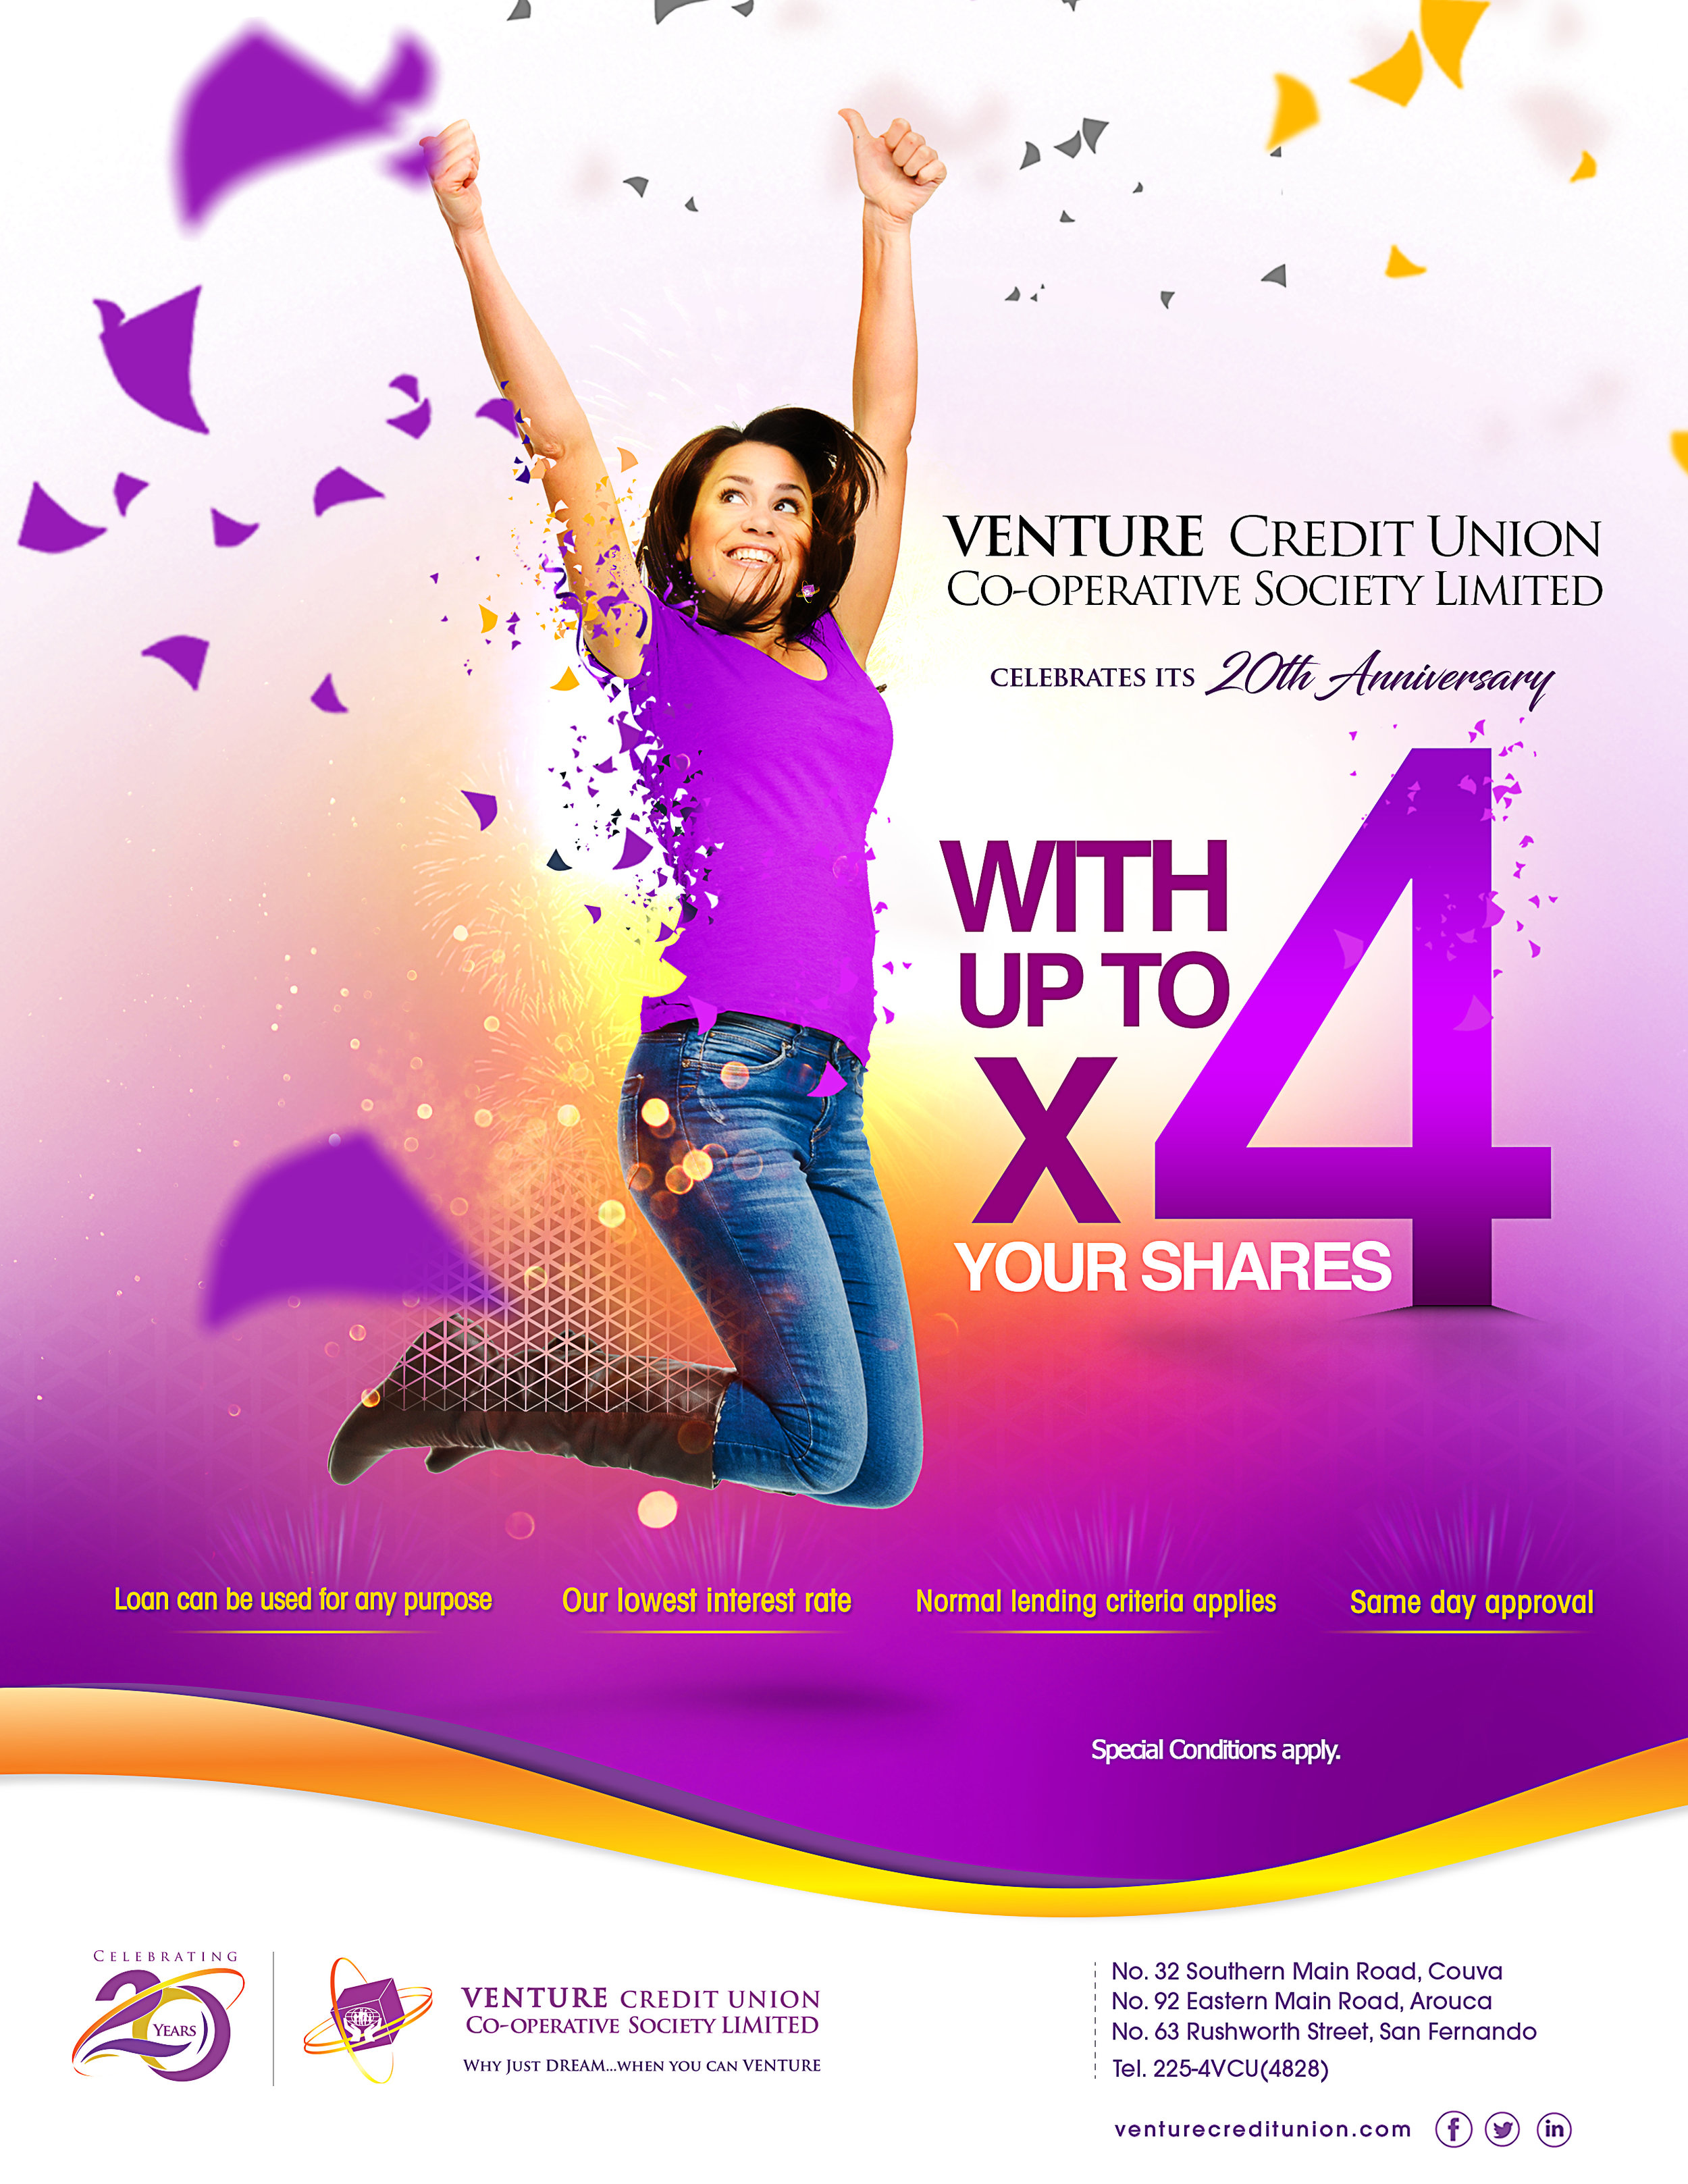 Venture 4x your share Promo Ads 2.jpg